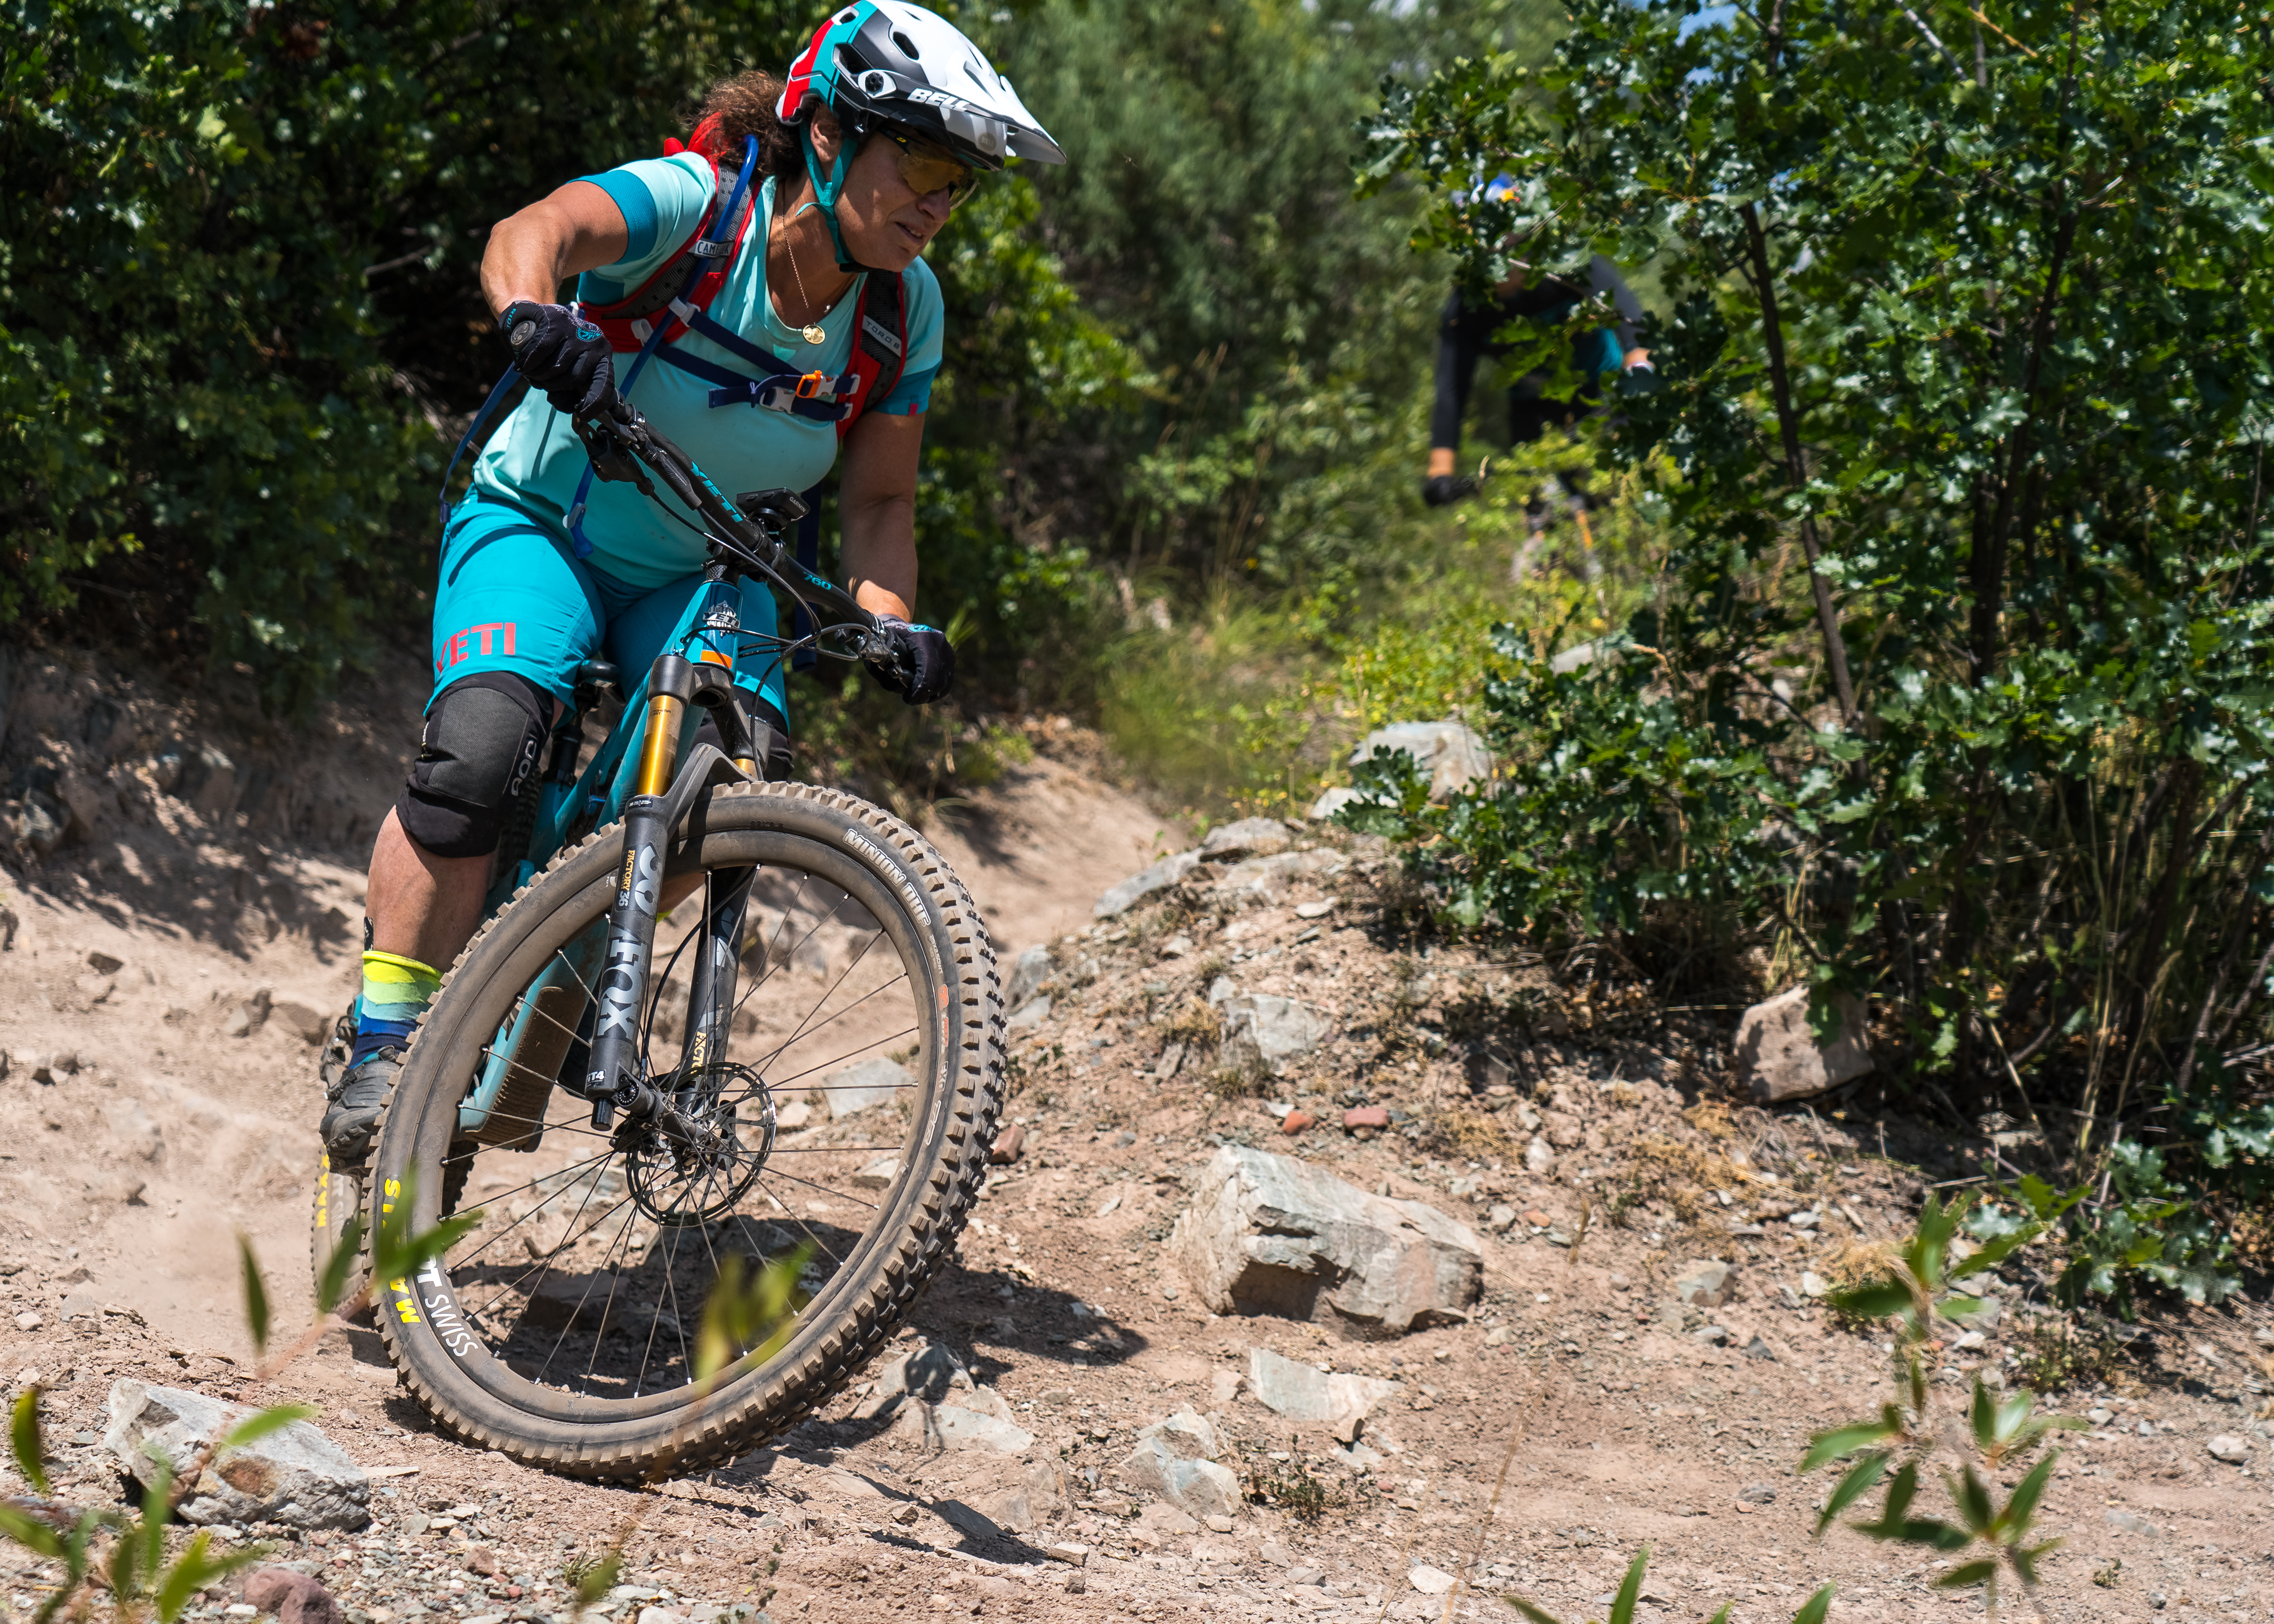 Yeti SB130 Review: Your Other Bikes Will Gather Dust | GearJunkie